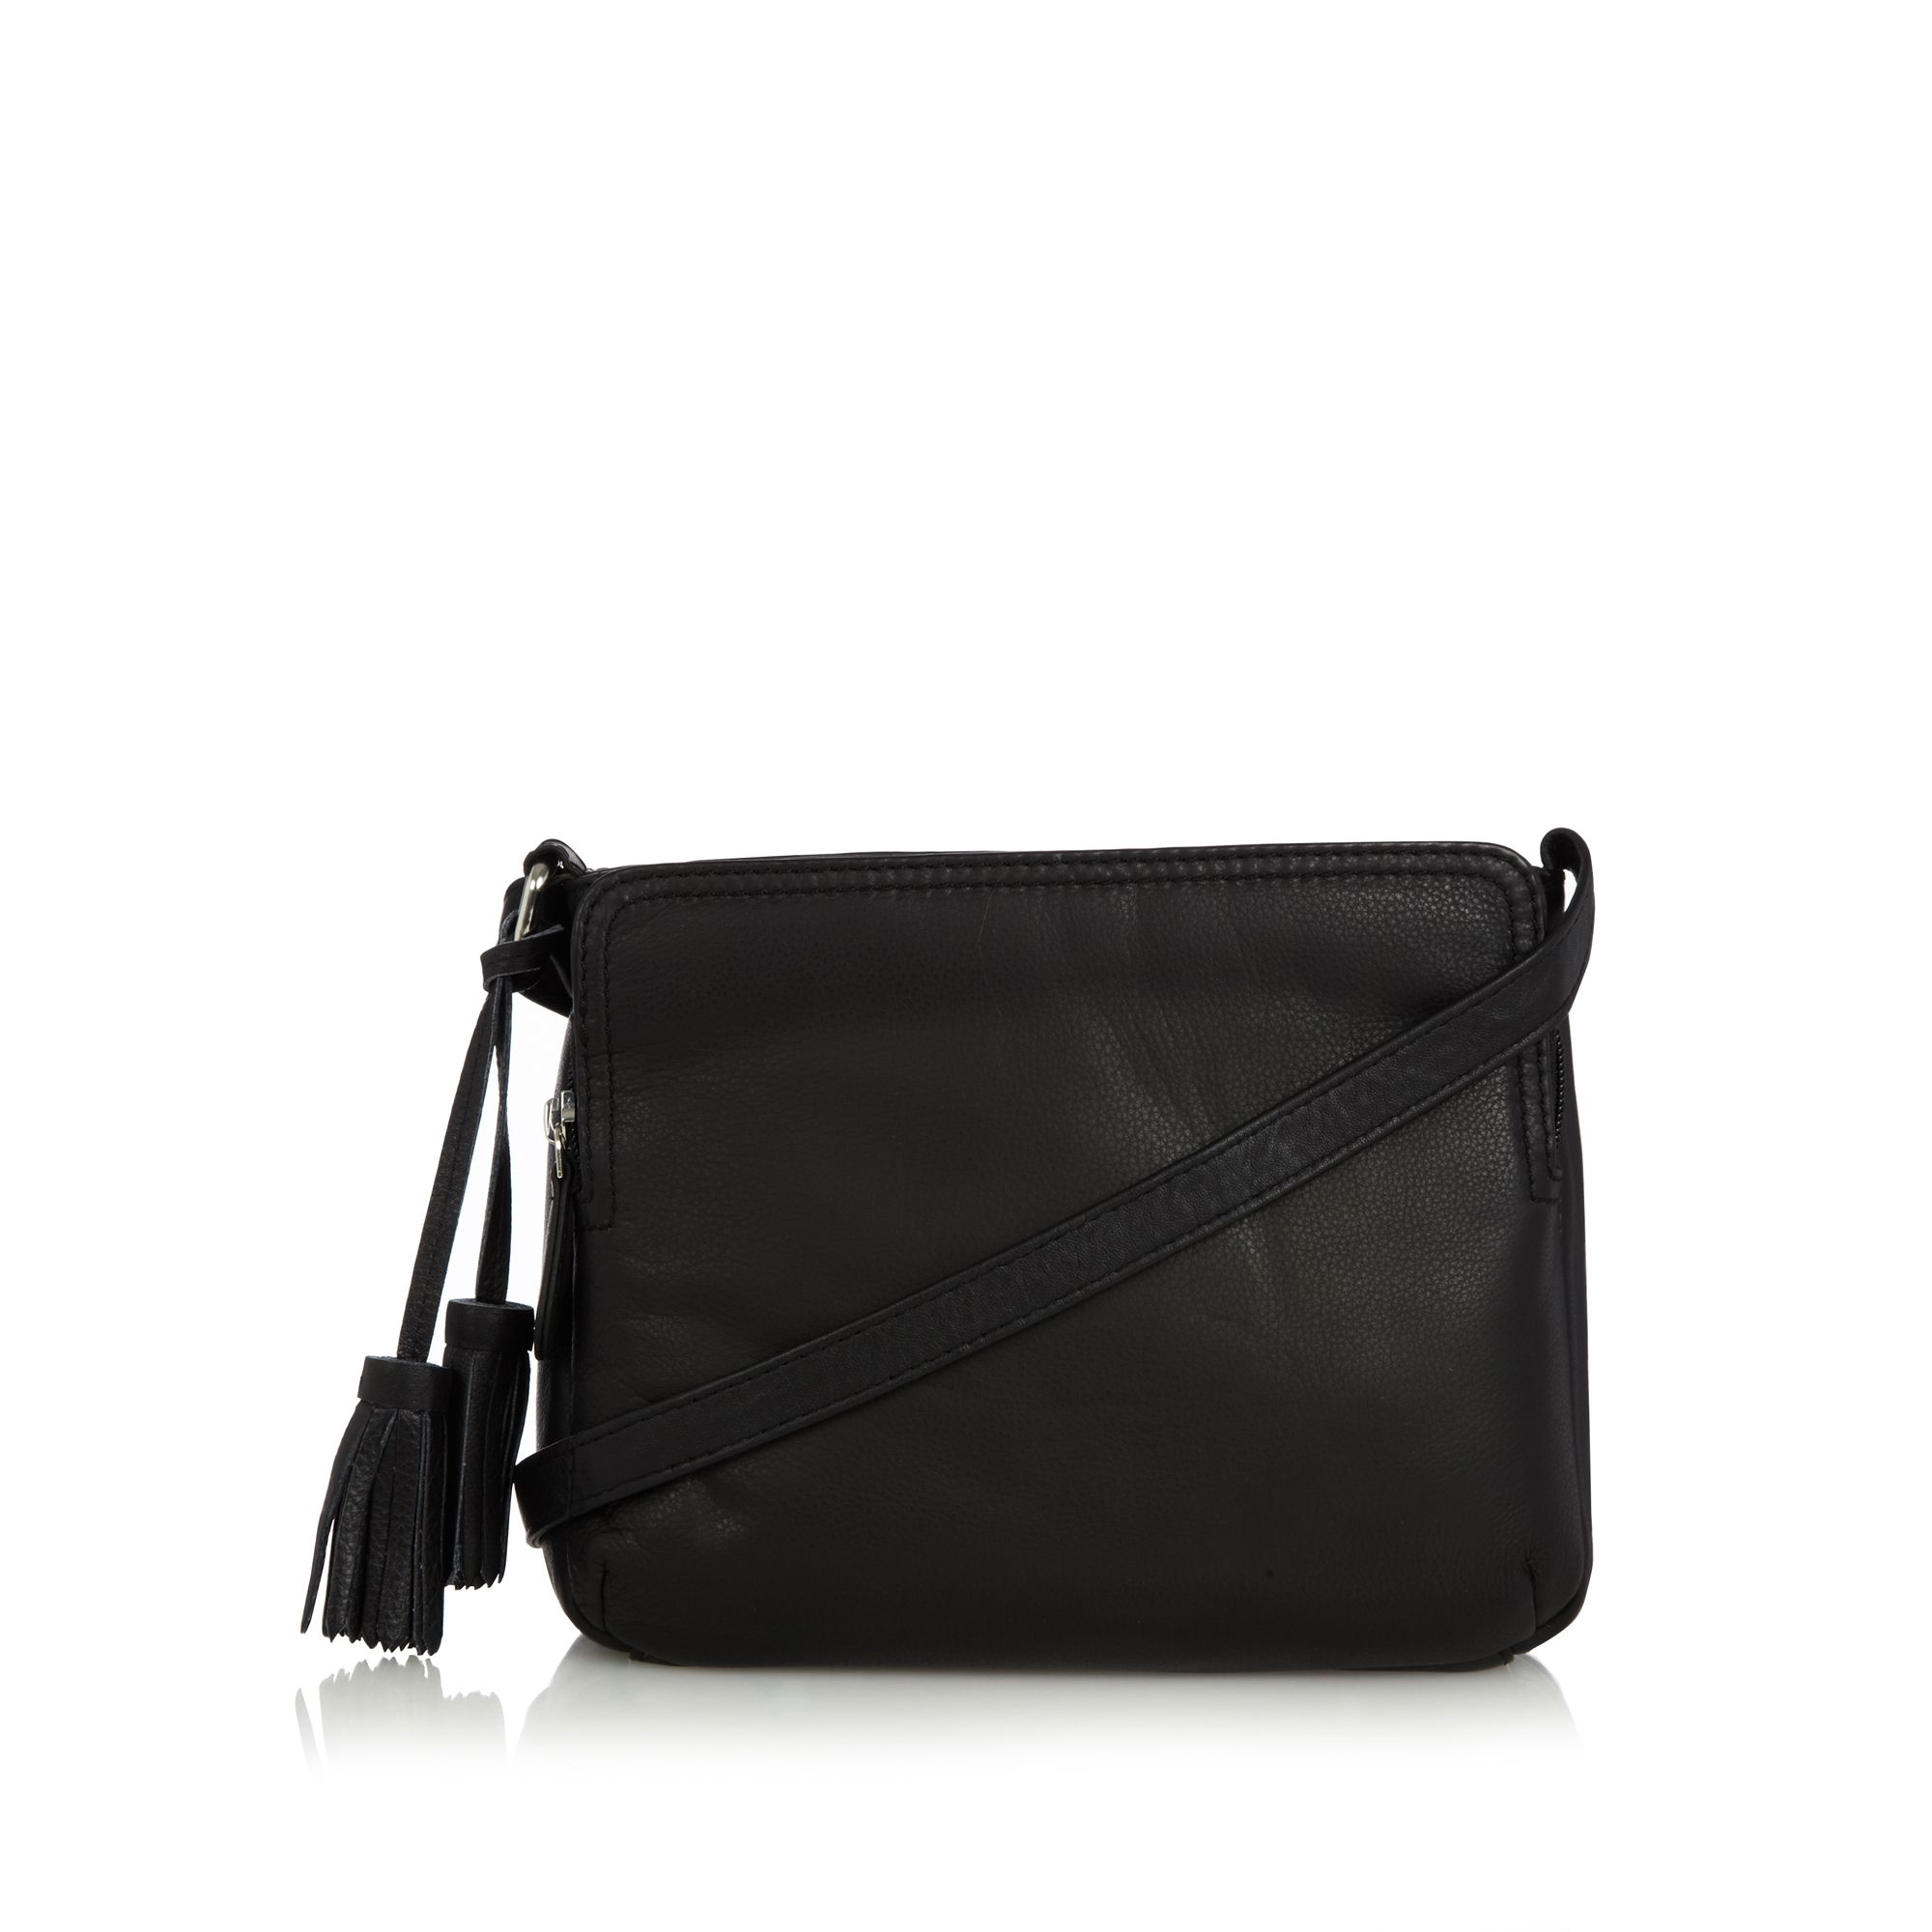 The Collection Black Leather Organiser Cross Body Bag From Debenhams